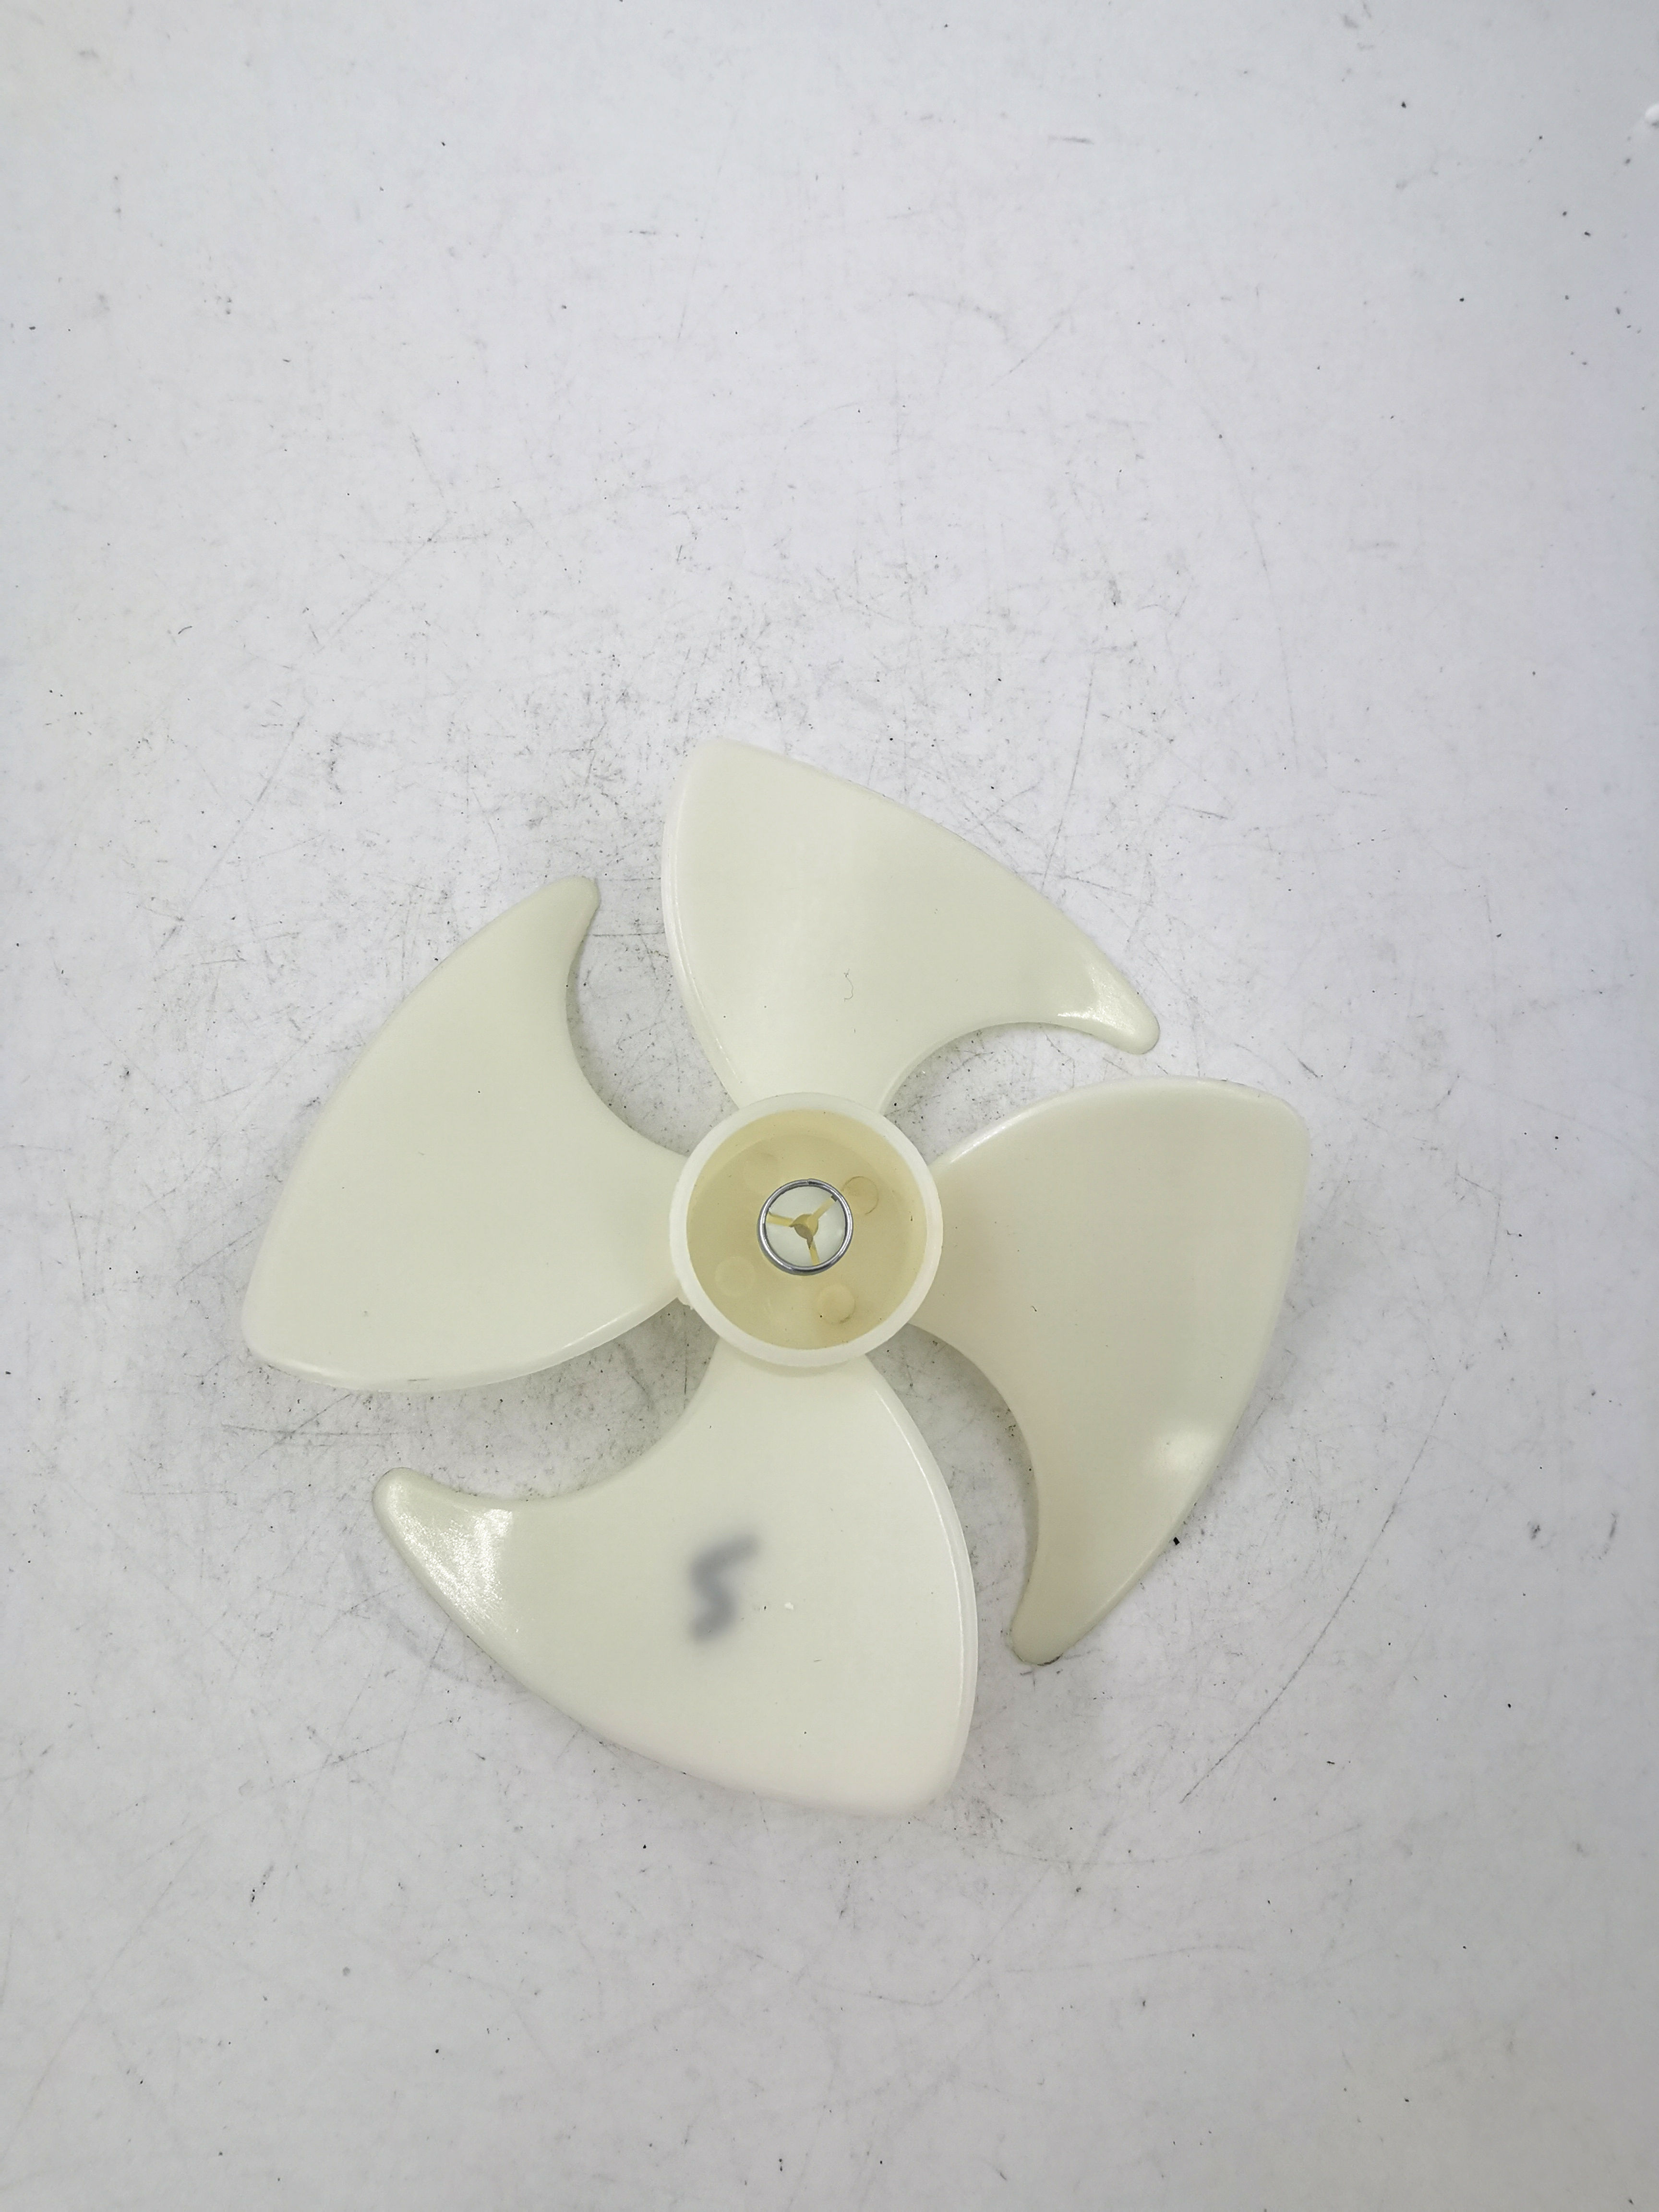 1pcs new Refrigerator cooling motor fan Plastic air blade 10CM for fan motor yzf-1-6.5-r